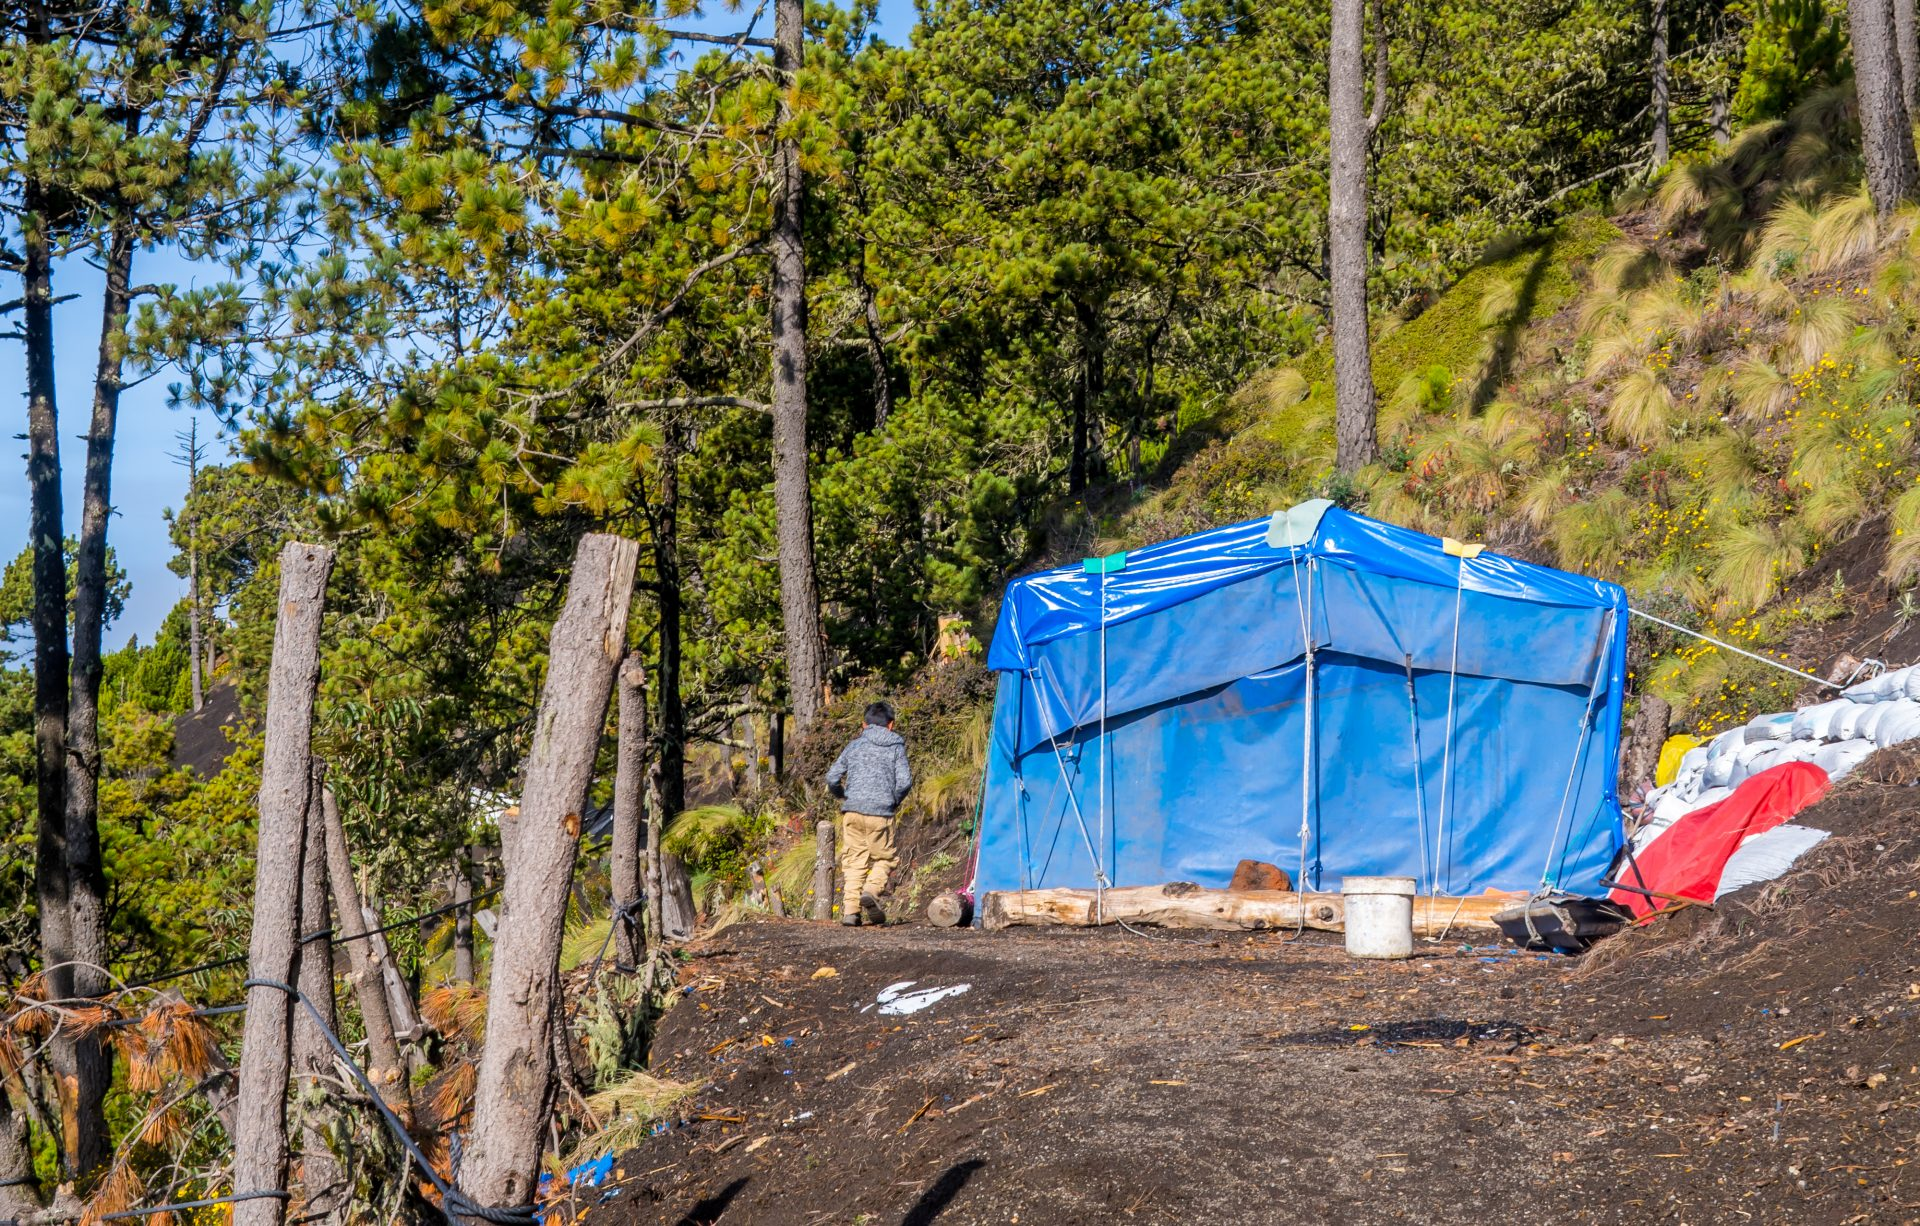 Acatenango in Guatemala - tents in the camp